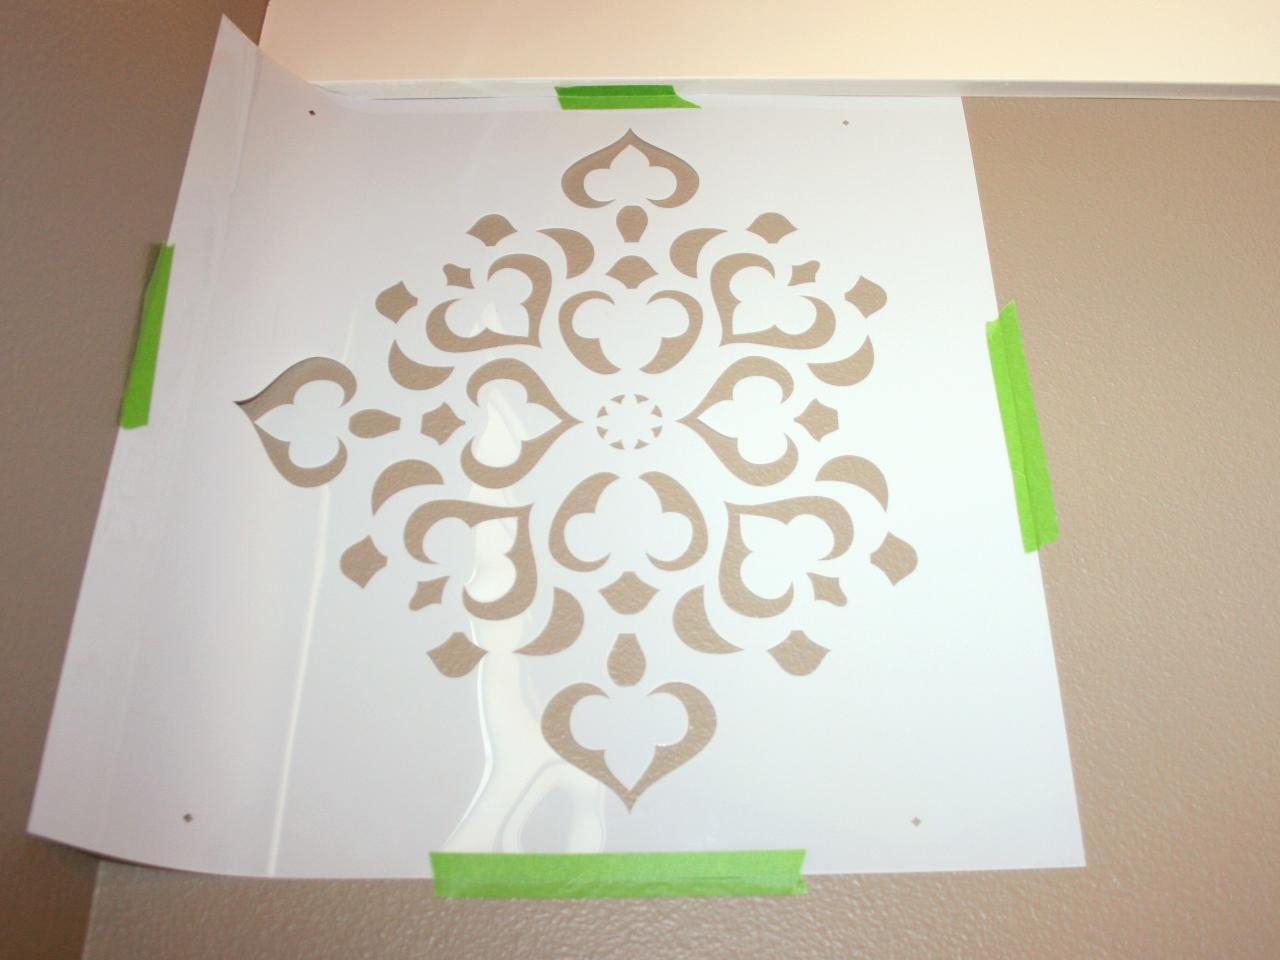 How To Stencil A Focal Wall | Hgtv Inside Space Stencils For Walls (Image 17 of 20)